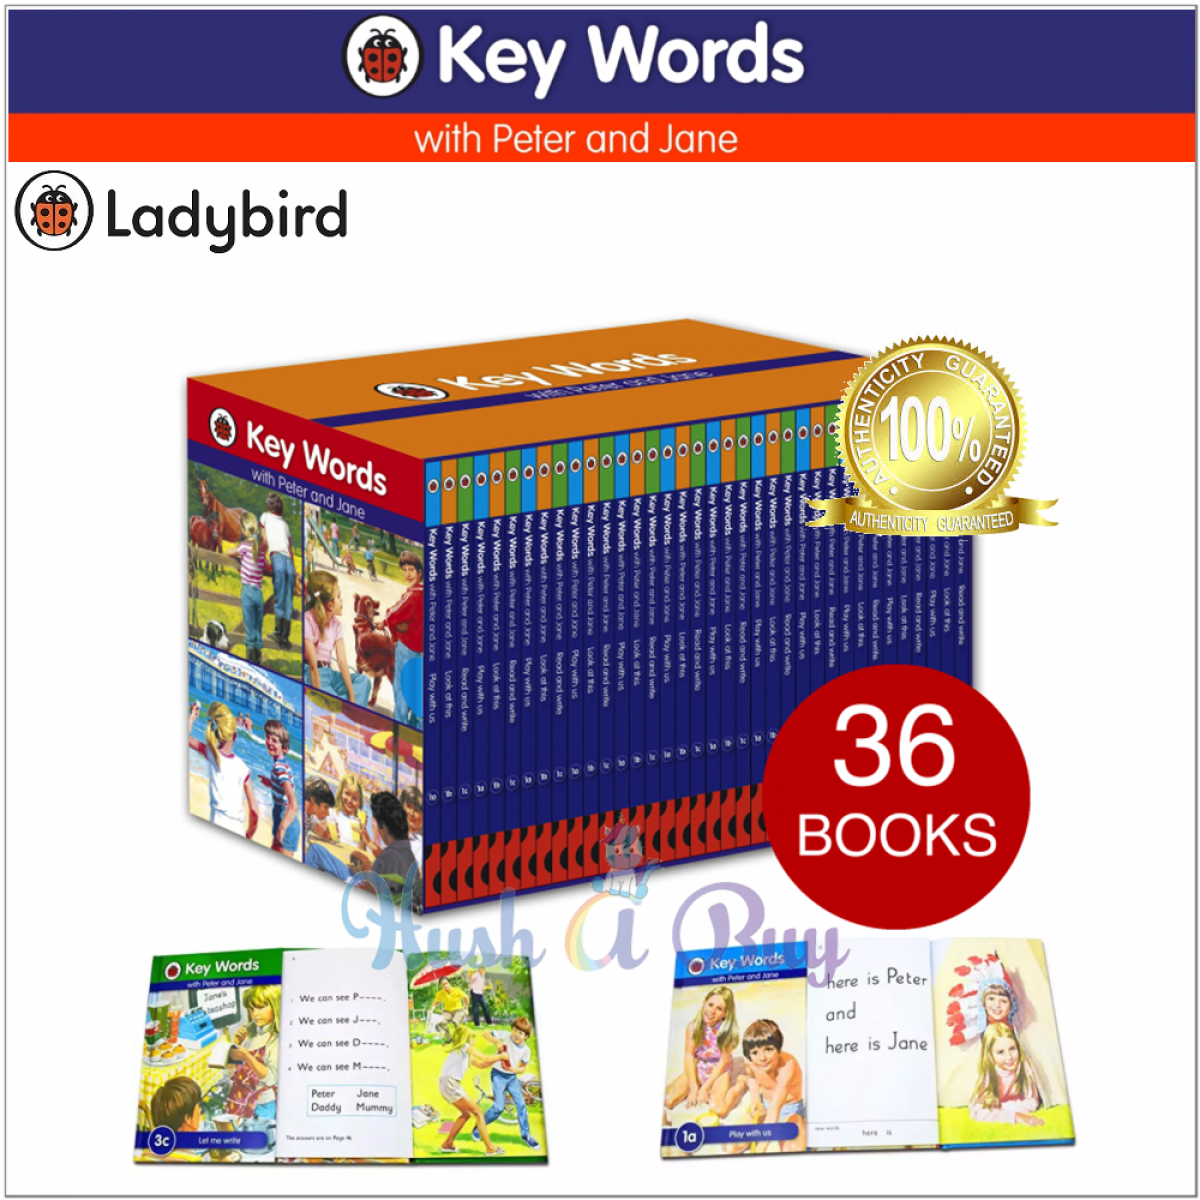 keywords with peter and jane pdf